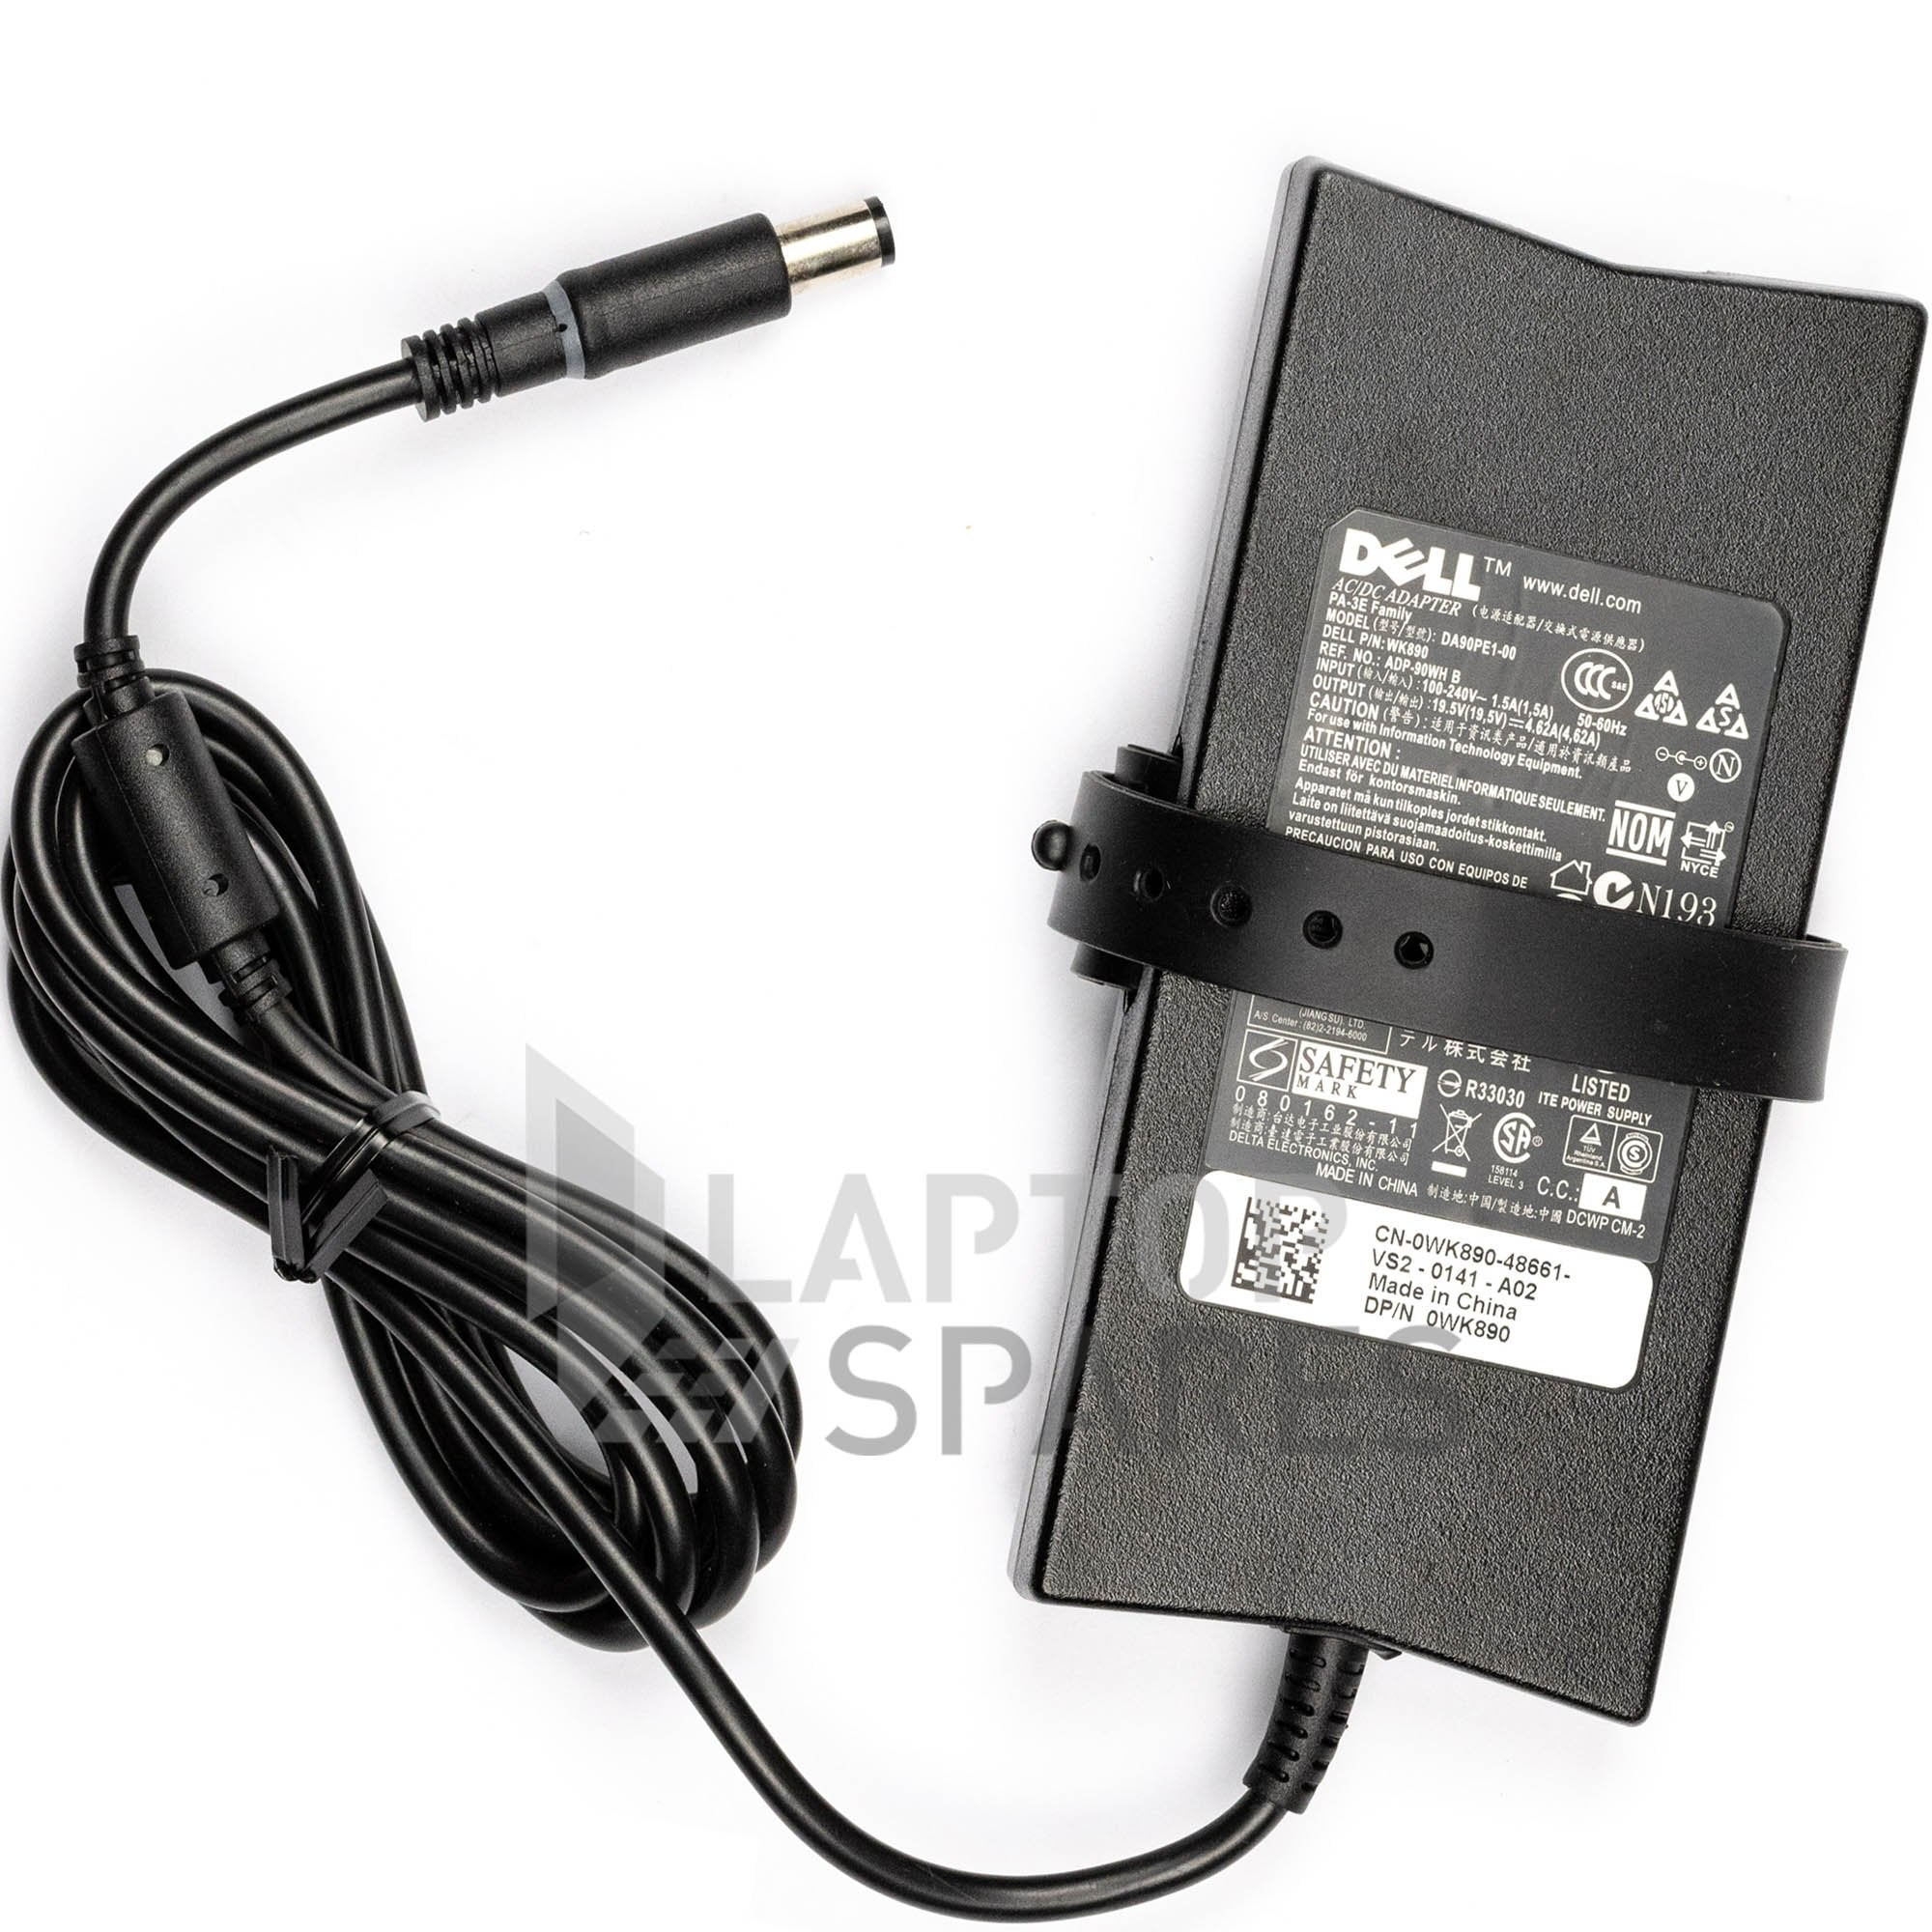 Dell Latitude D520 D530 D531 Laptop Slim AC Adapter Charger